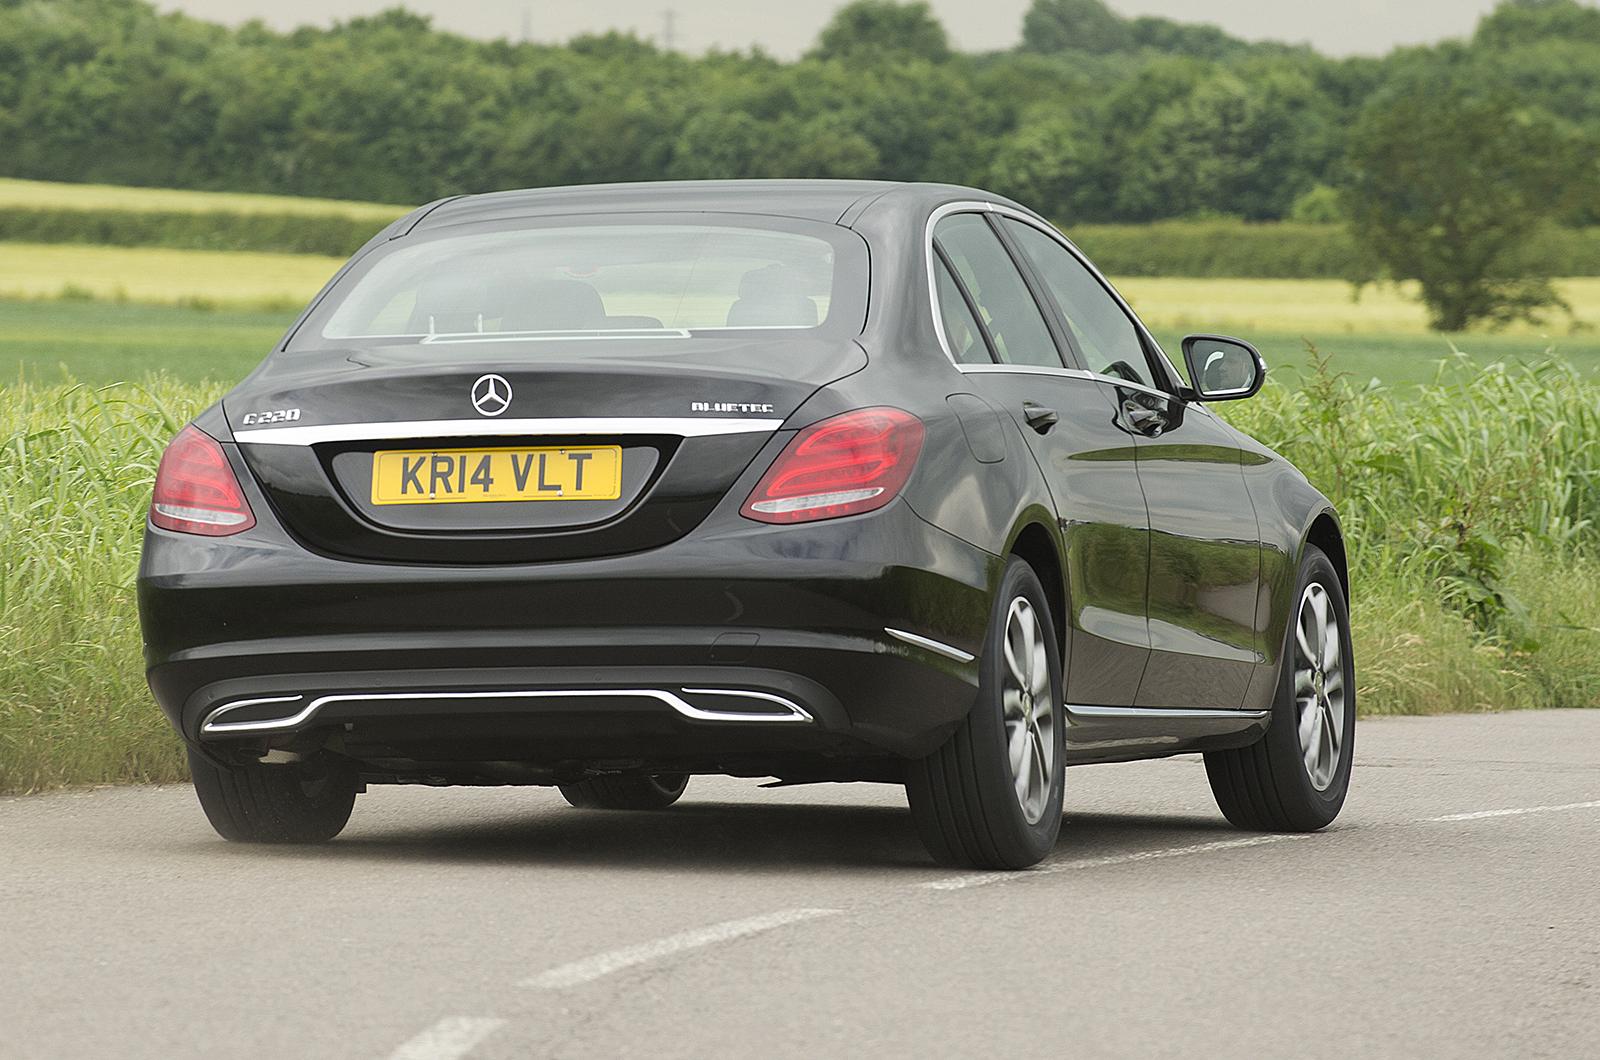 2014 mercedes benz c class c220 uk first drive. Black Bedroom Furniture Sets. Home Design Ideas